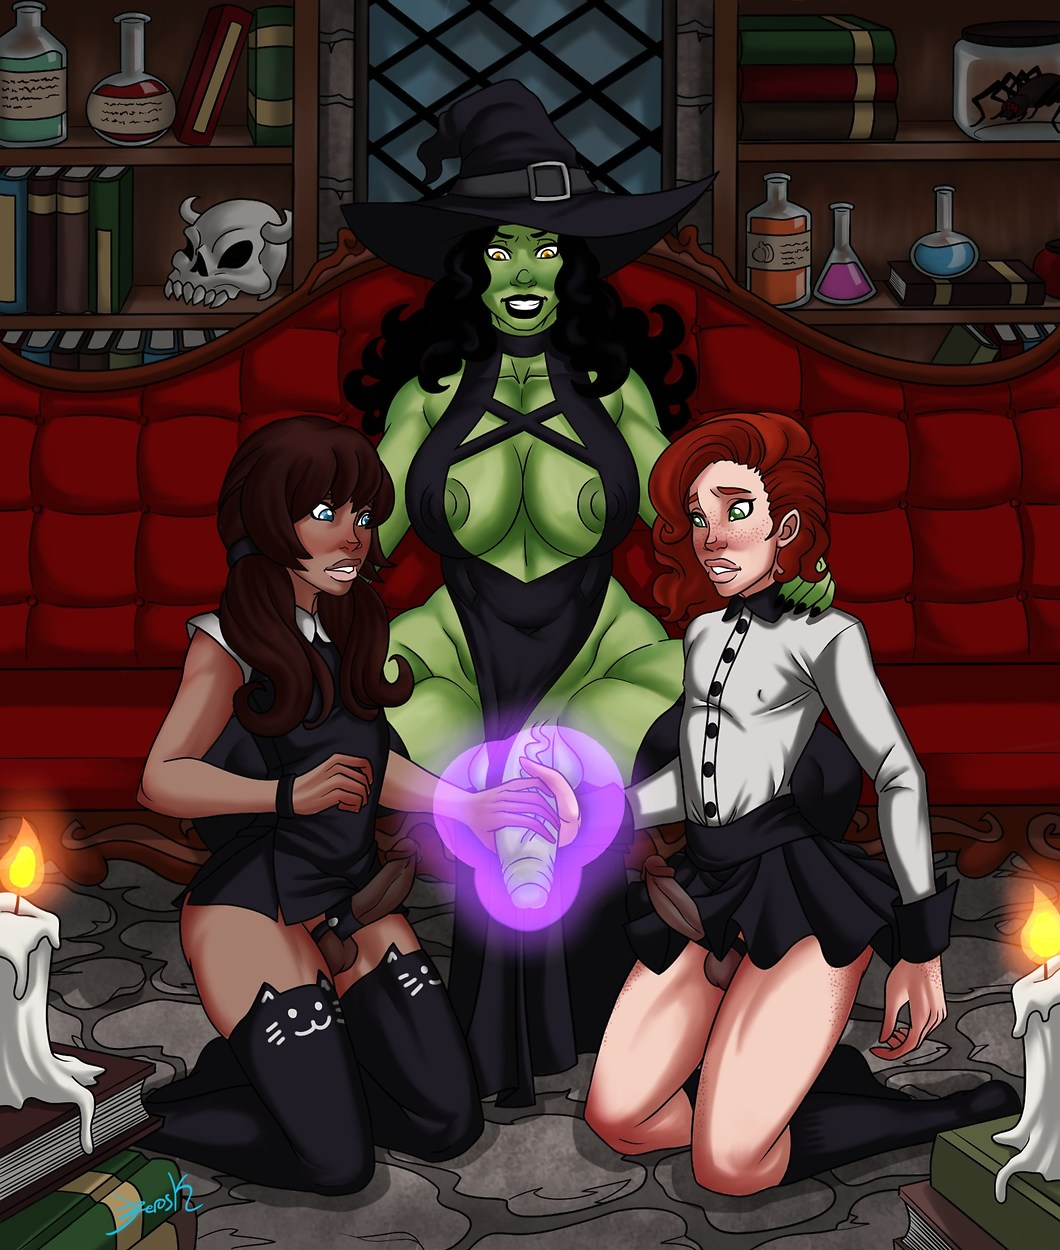 oz wizard of cartoon porn Fallout new vegas daughters of ares